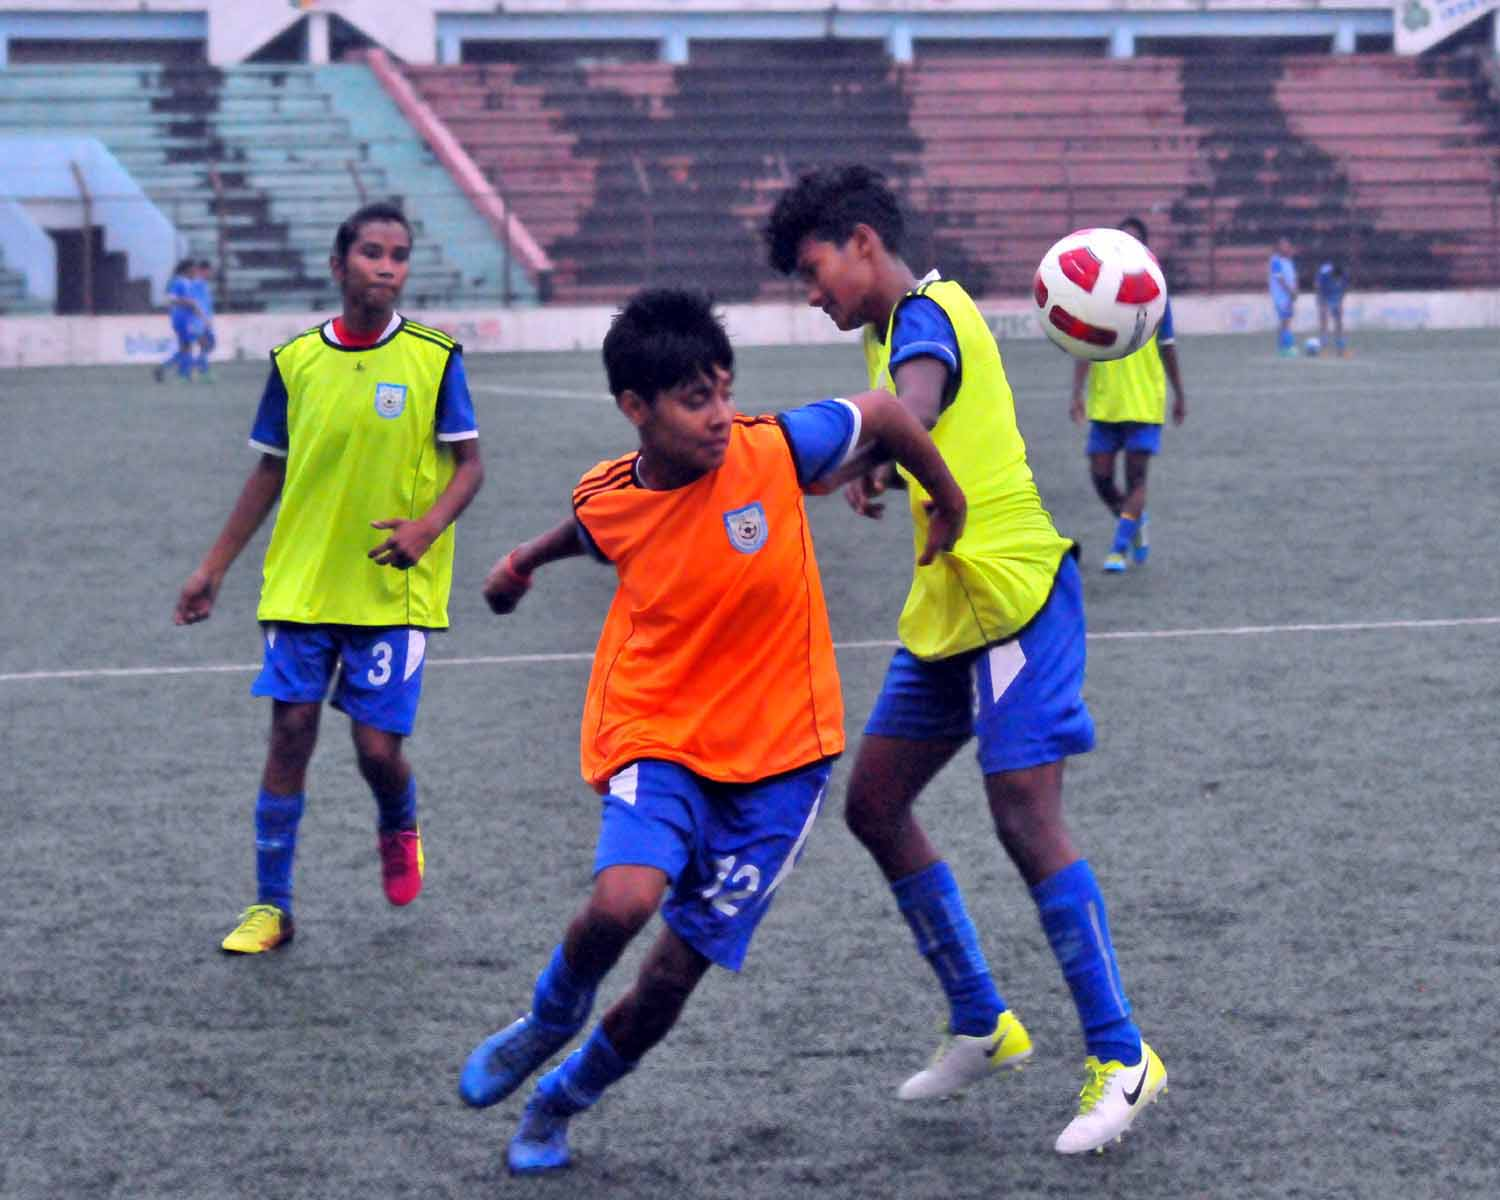 Members of Bangladesh Under-15 National Women's Football team during their practice session at the Bir Shreshtha Shaheed Sepoy Mohammad Mostafa Kamal Stadium in the city's Kamalapur on Wednesday.